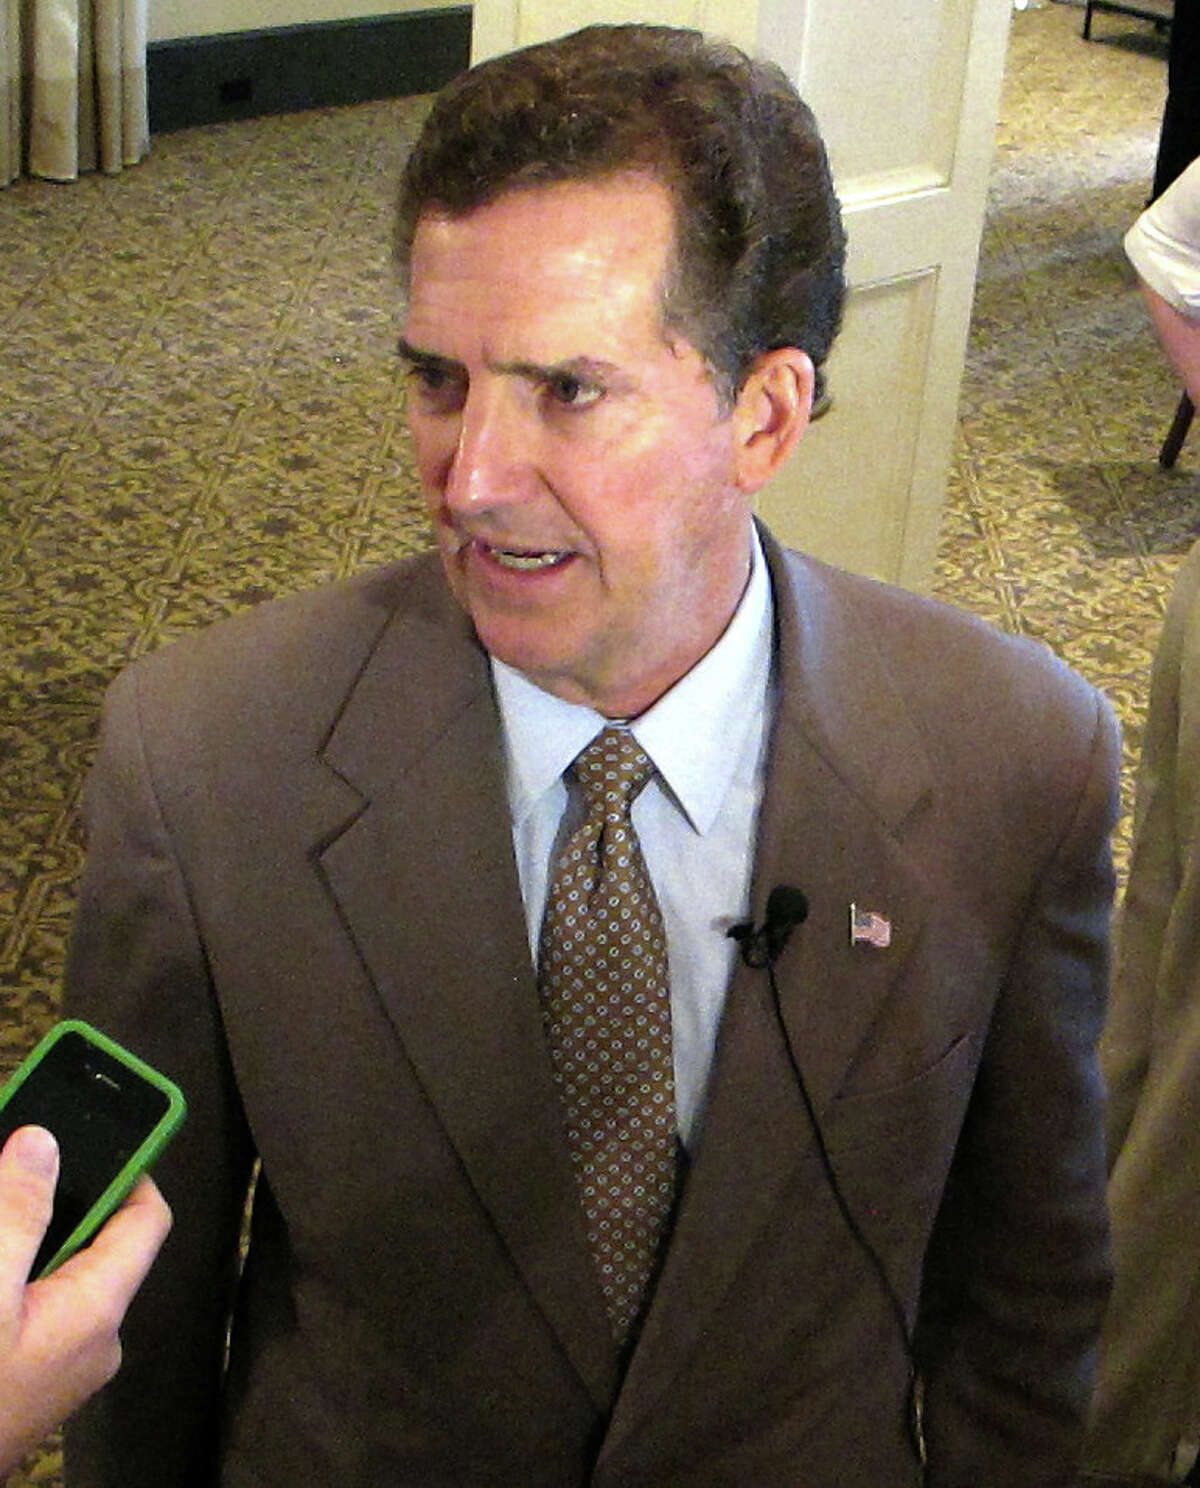 U.S. Sen. Jim DeMint, R-S.C., speaks with reporters in Charleston, S.C., on Tuesday, Aug., 30, 2011. DeMint says he has no plans at this time to seek re-election in 2016. (AP Photo/Bruce Smith)